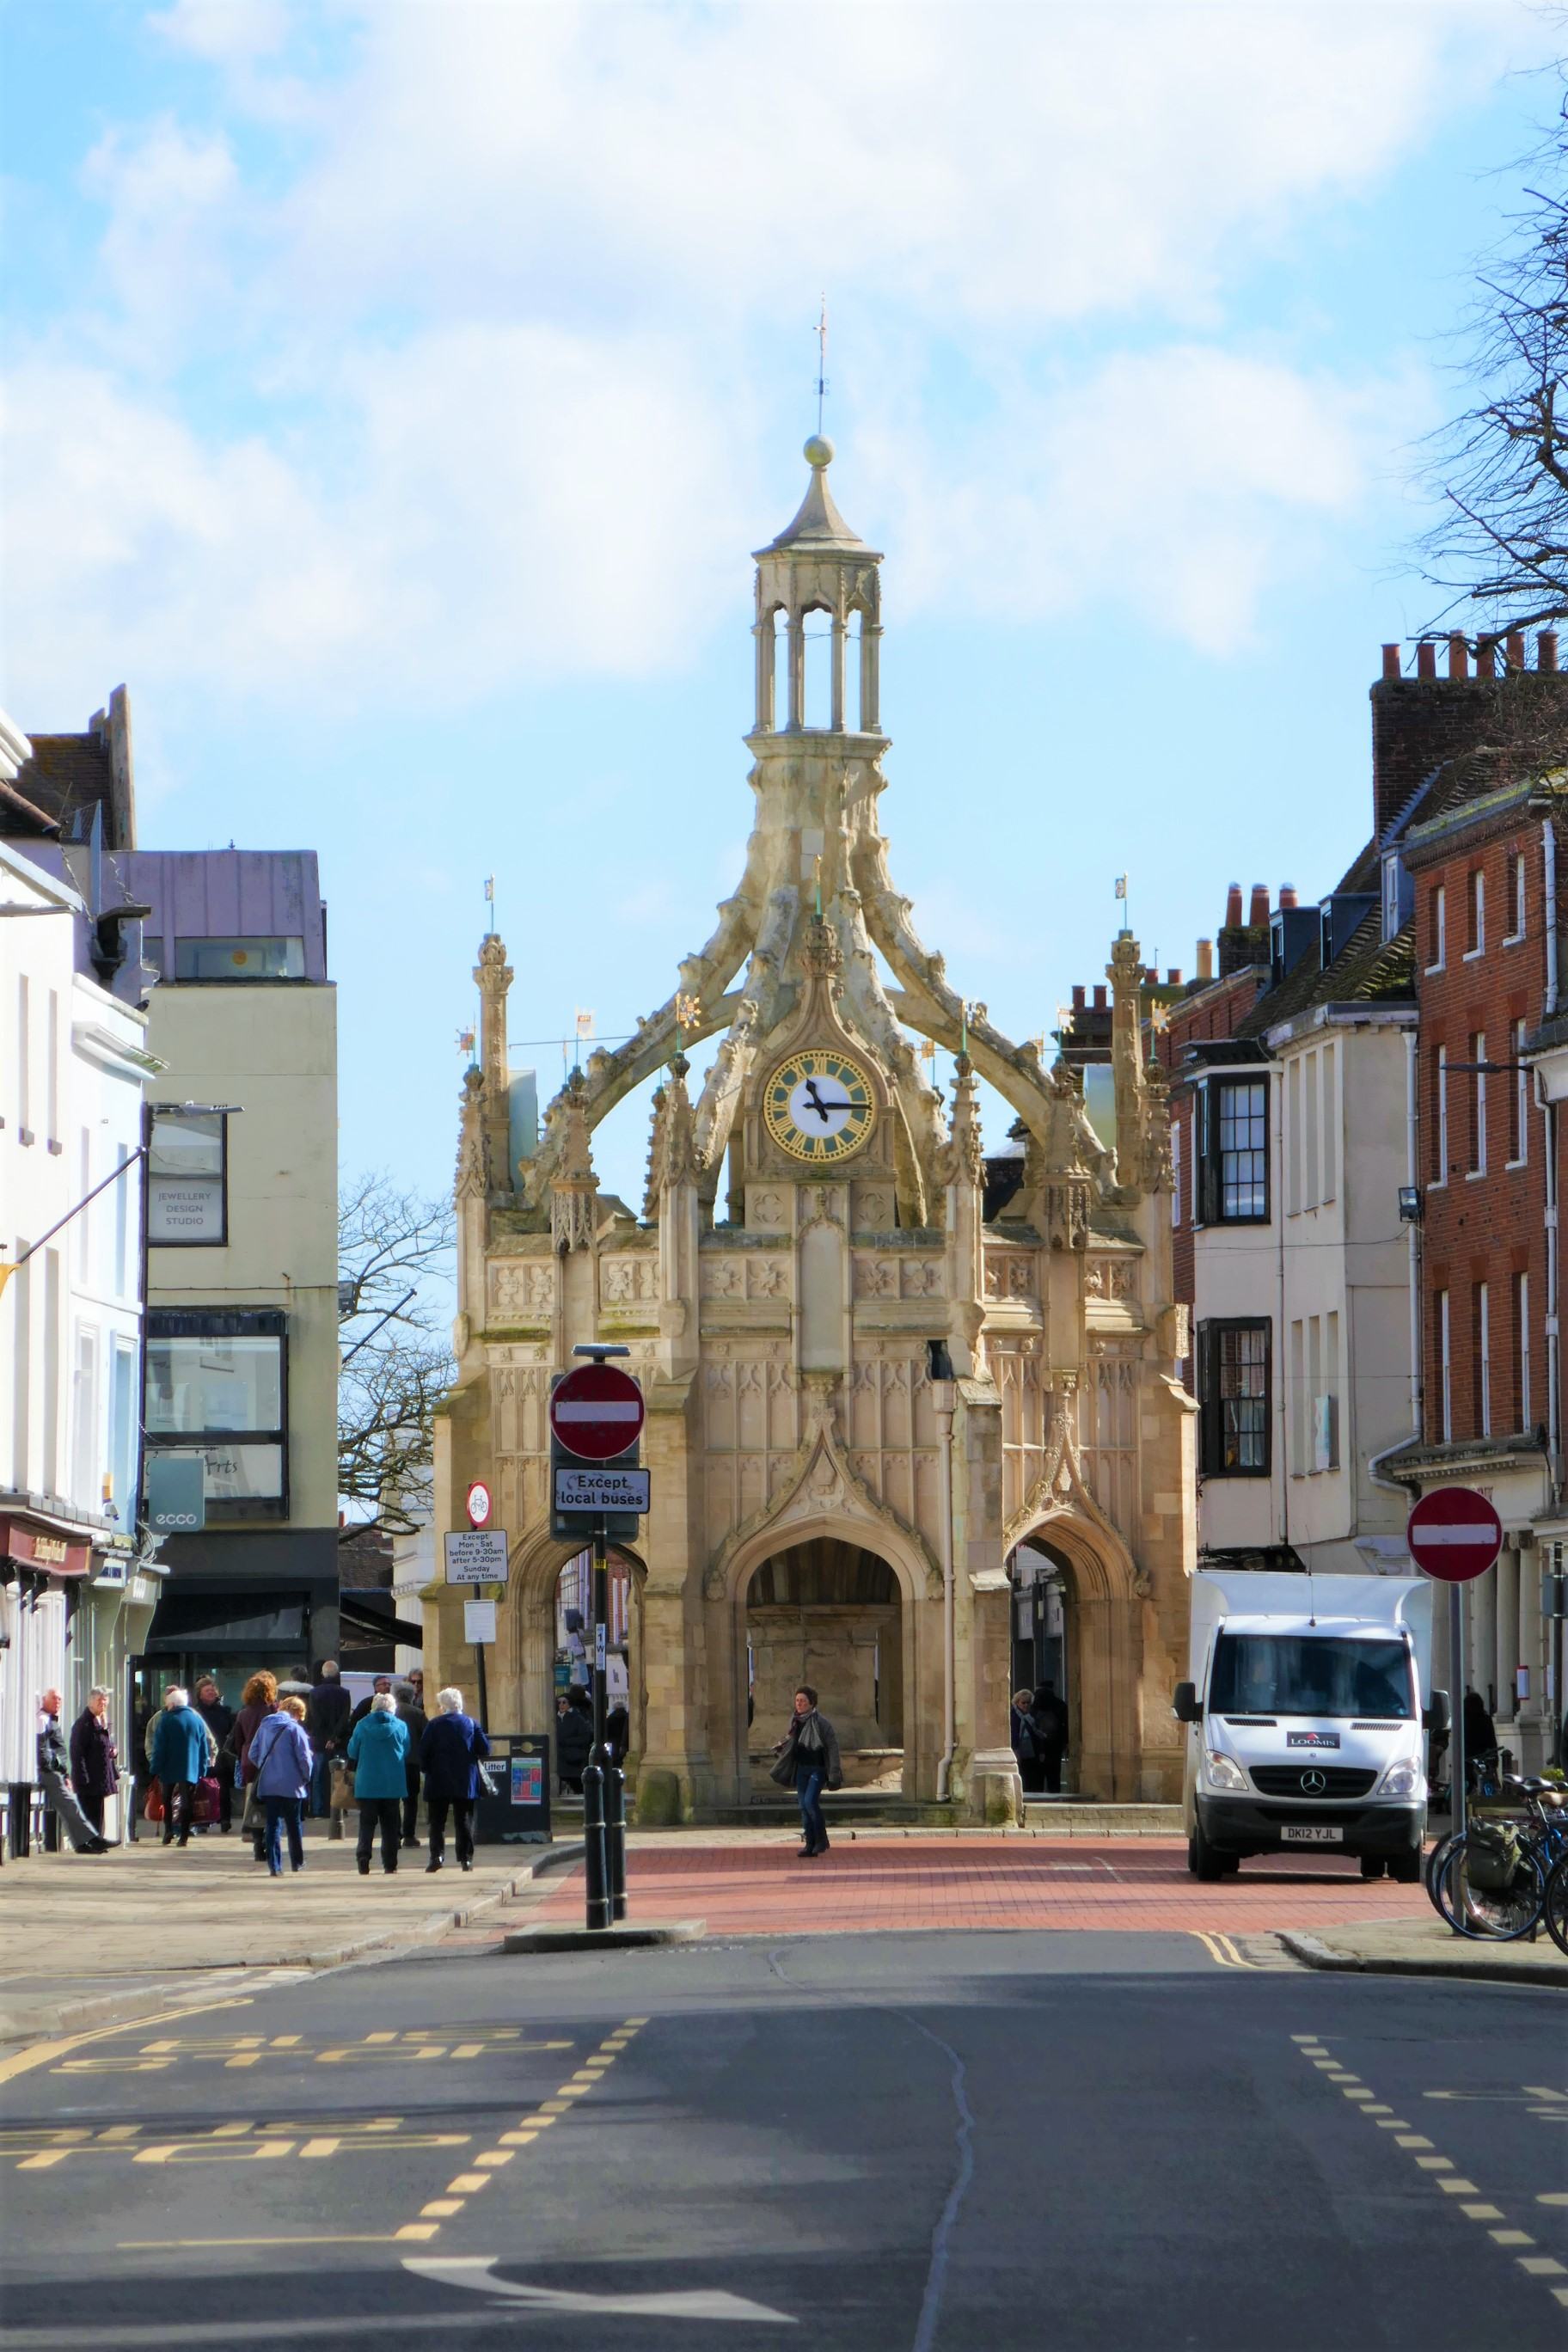 Chichester Market Cross - Lucy Williams Global